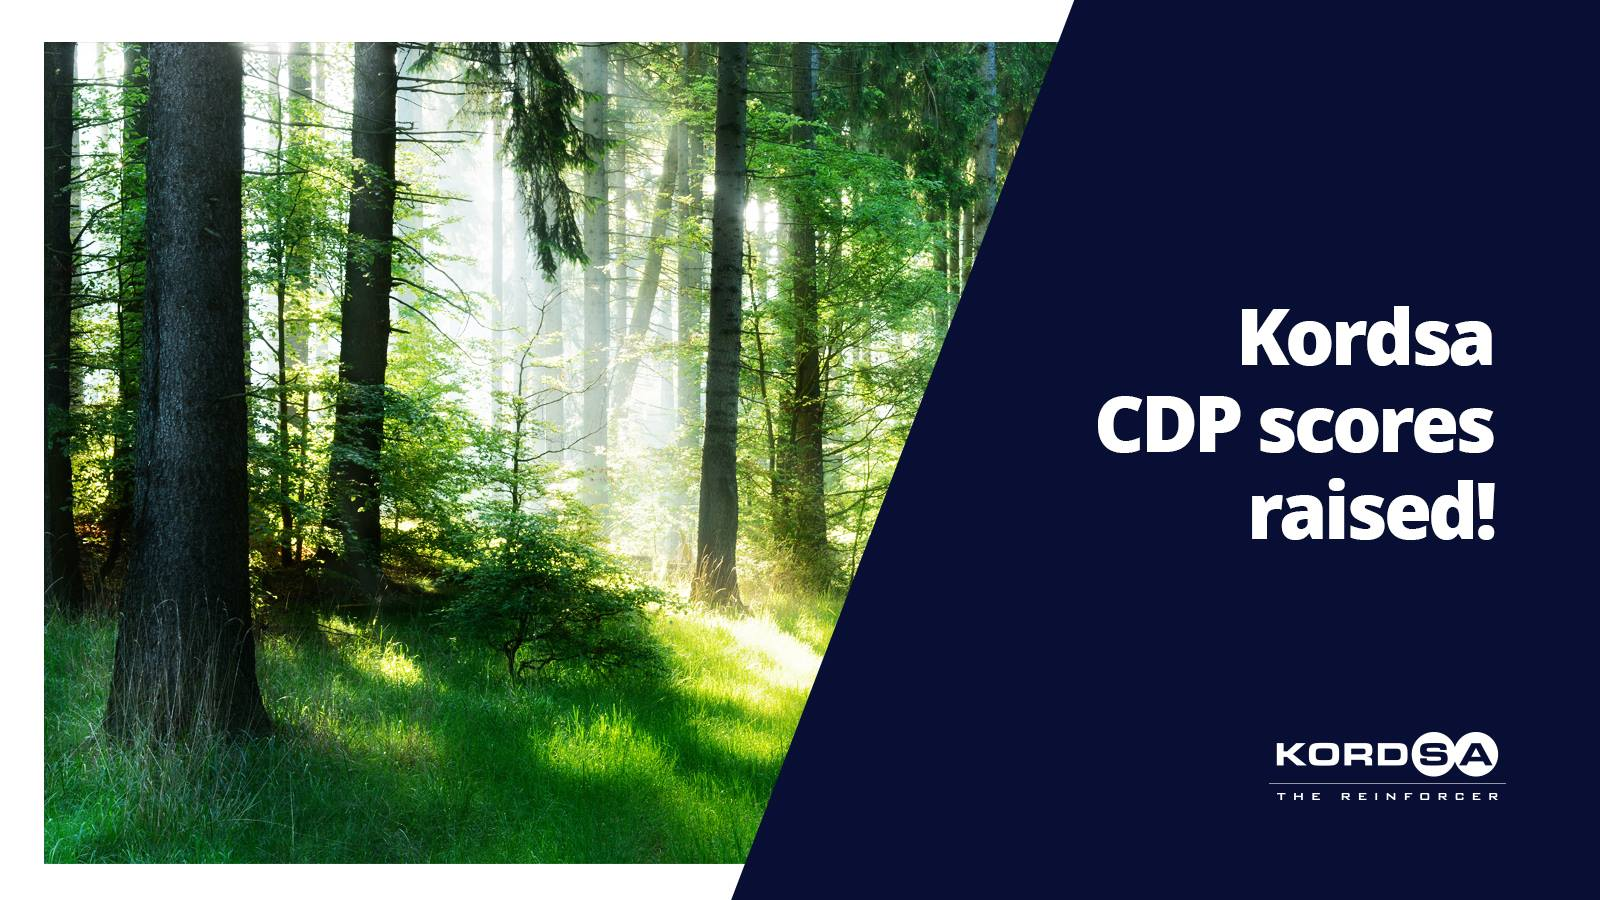 Kordsa Among Best Performers According to Evaluation of the Carbon Disclosure Project (CDP)